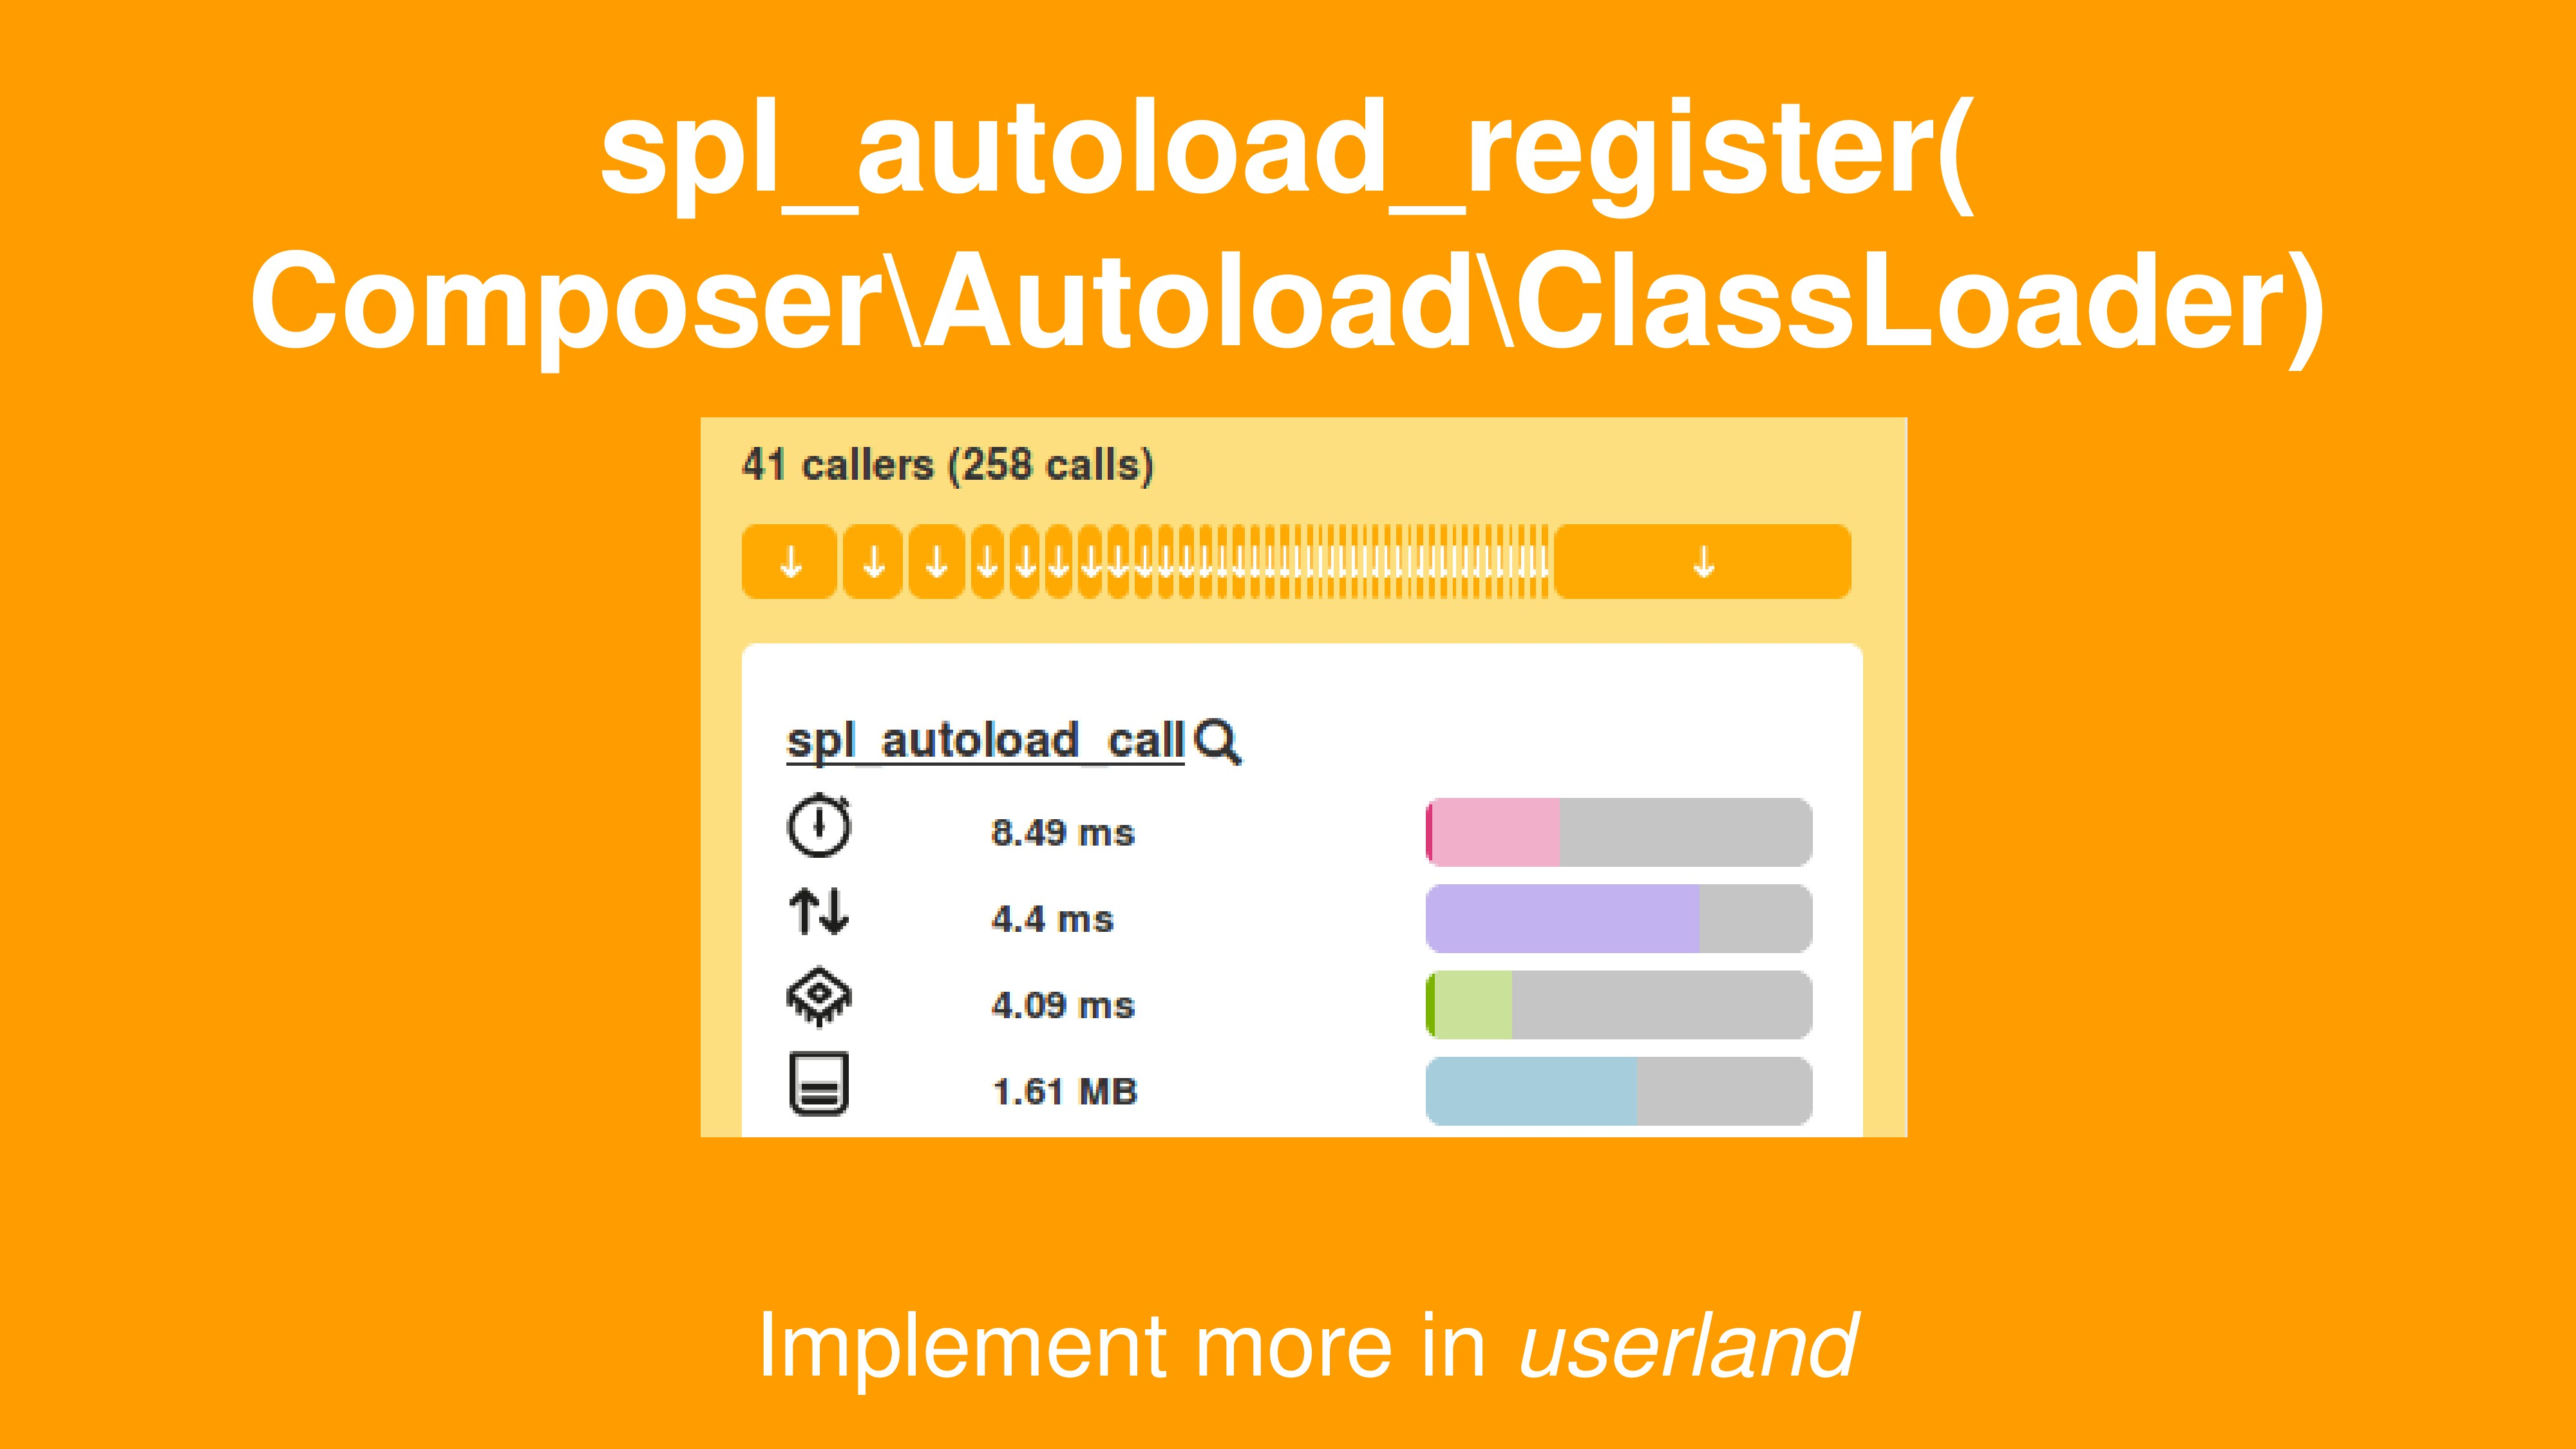 spl_autoload_register( Composer\Autoload\ClassL...